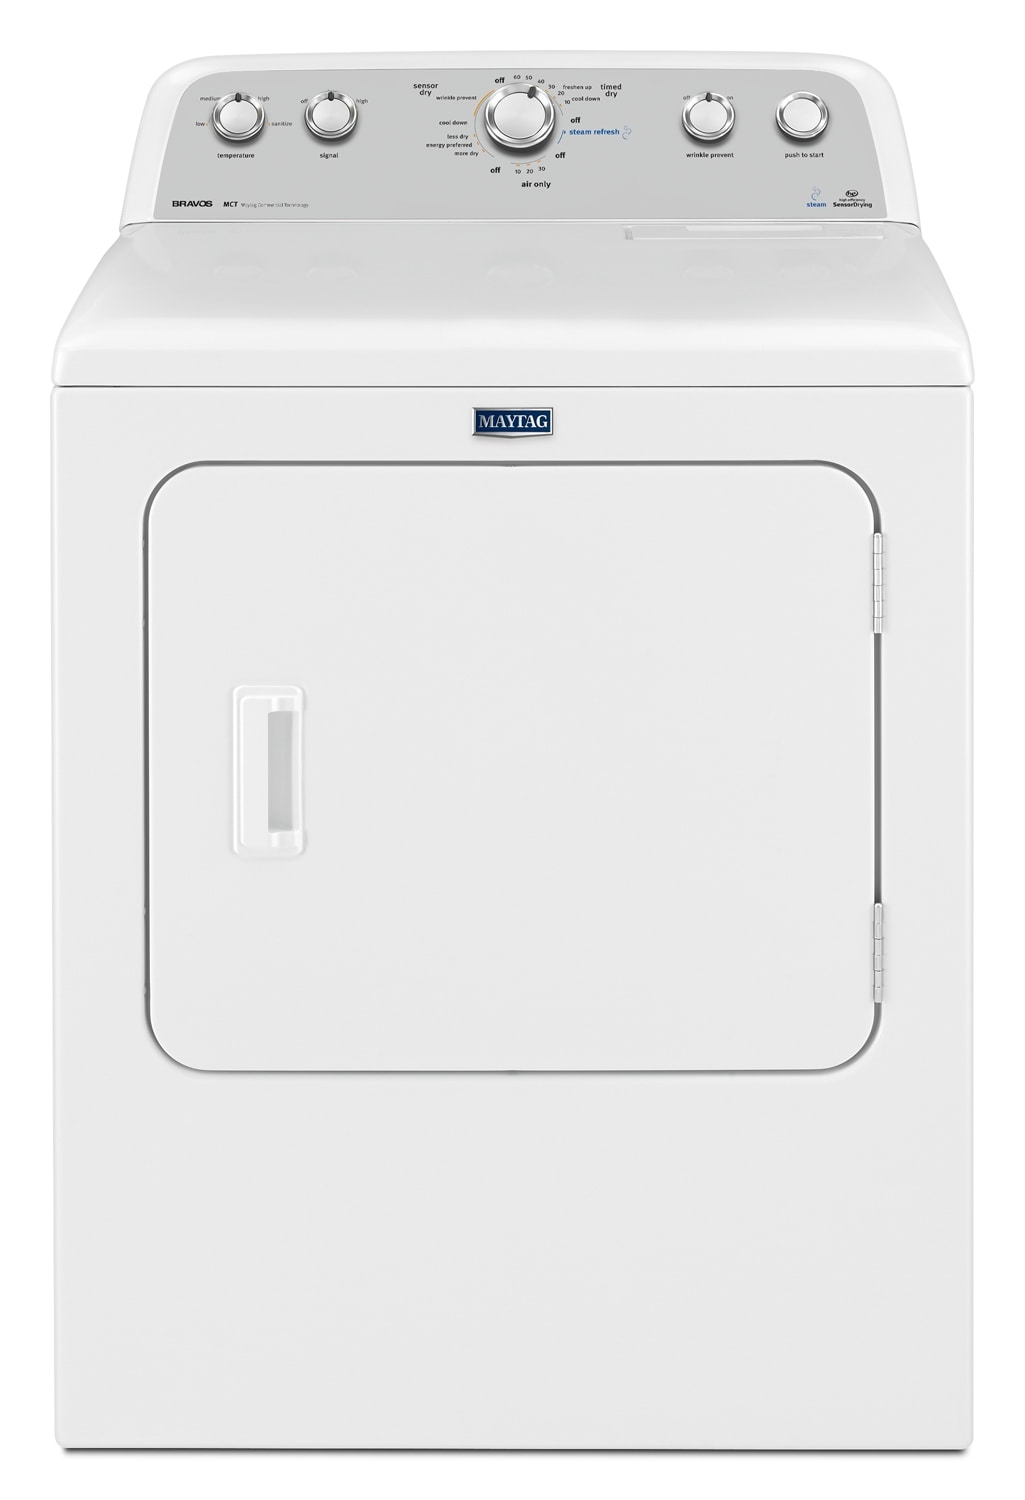 Washers and Dryers - Maytag Bravos® 7.0 Cu. Ft. High-Efficiency Electric Dryer - White